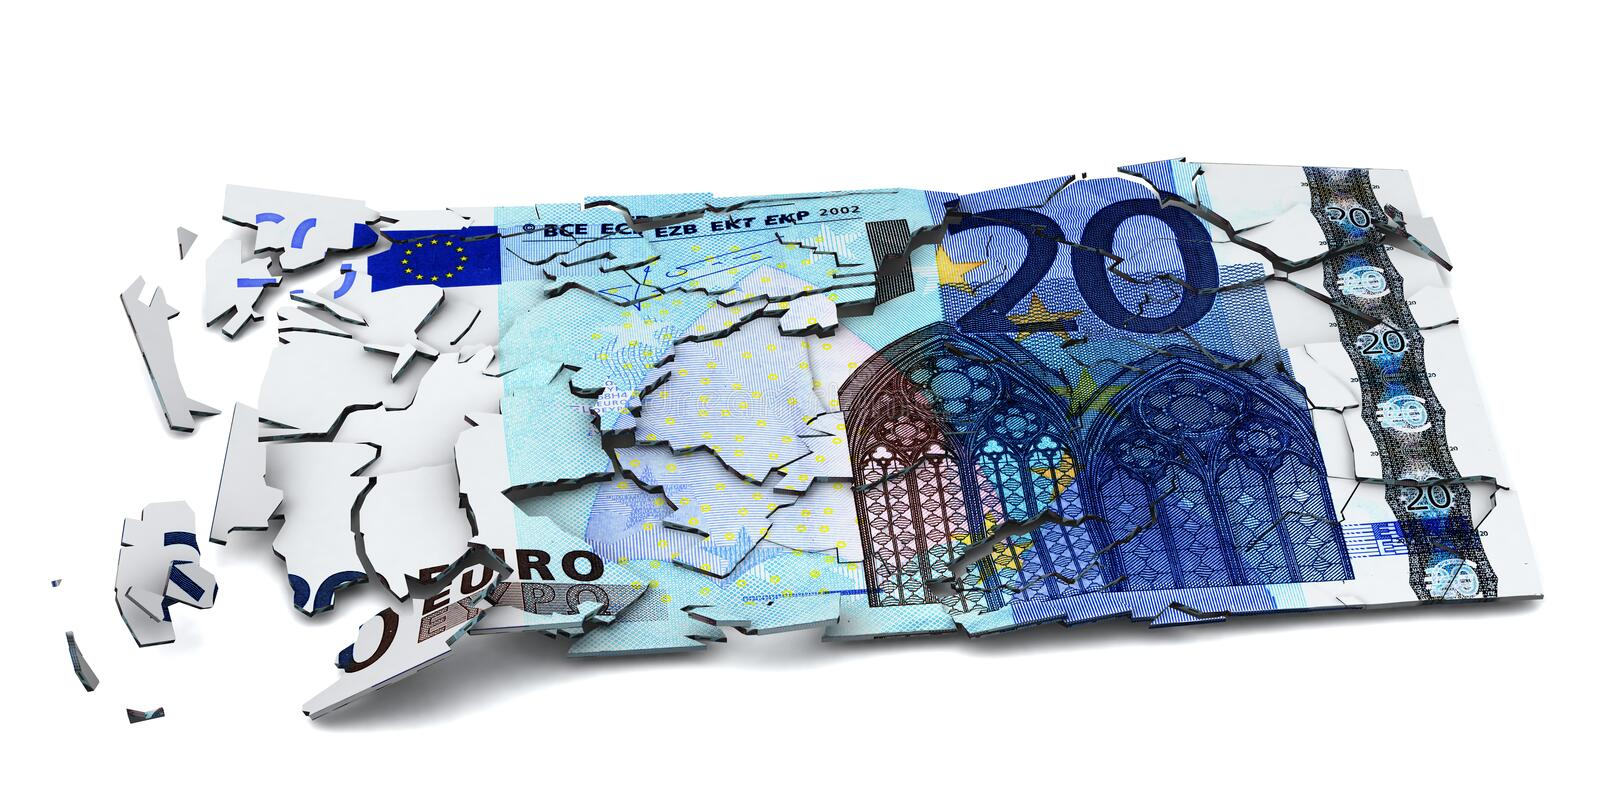 Euro billet de banque brisé illustration stock